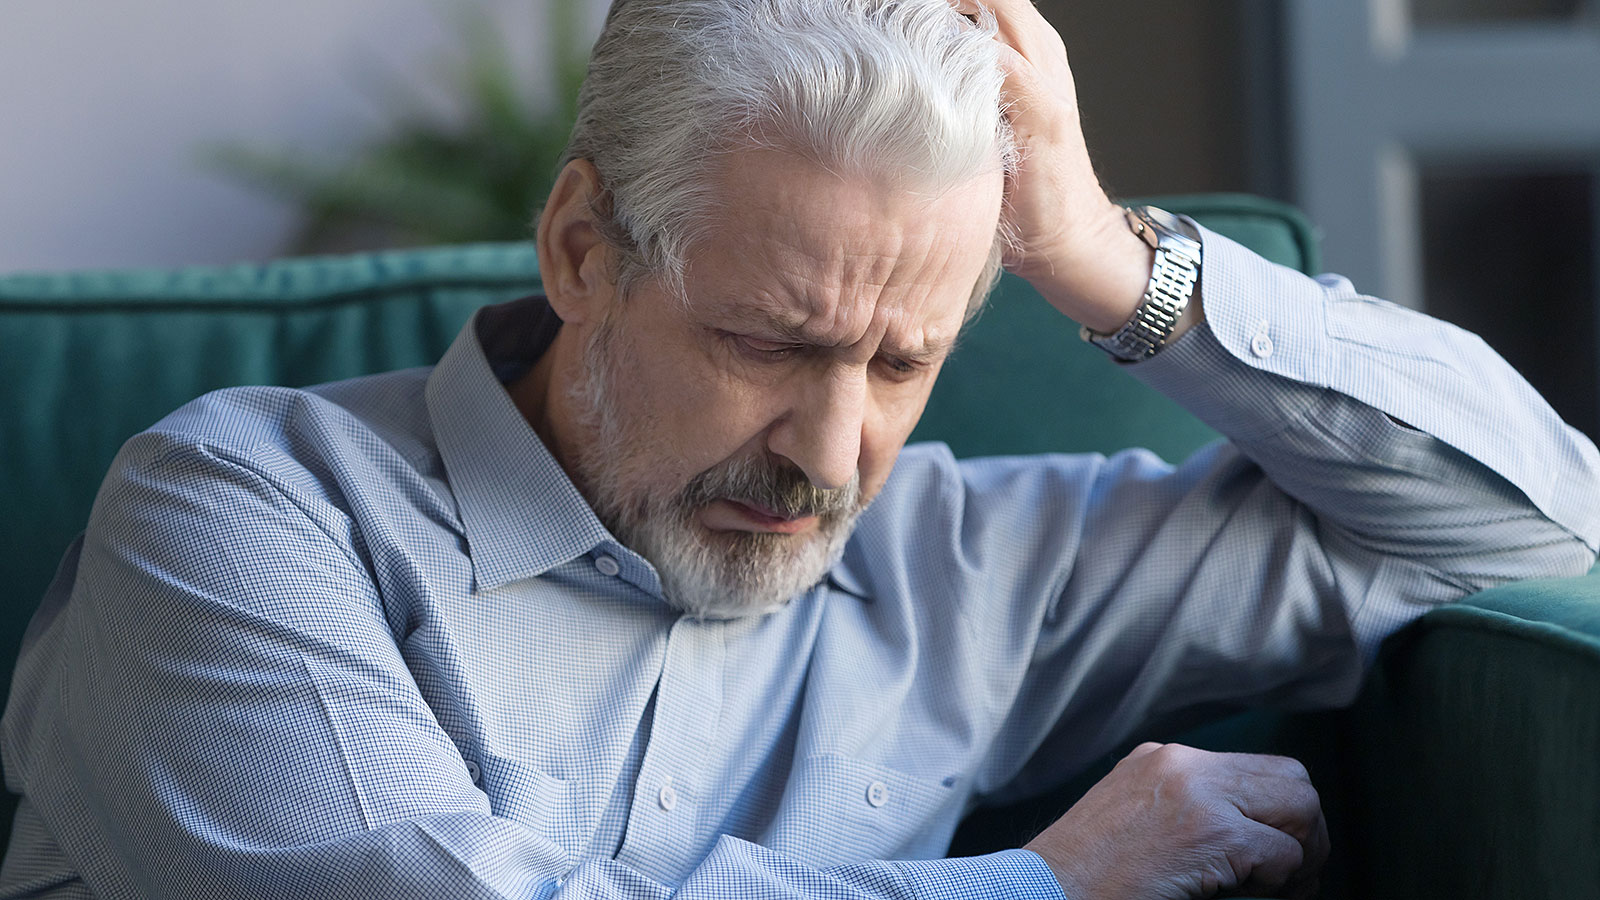 It's a long slow mental decline after you stop working, new study says